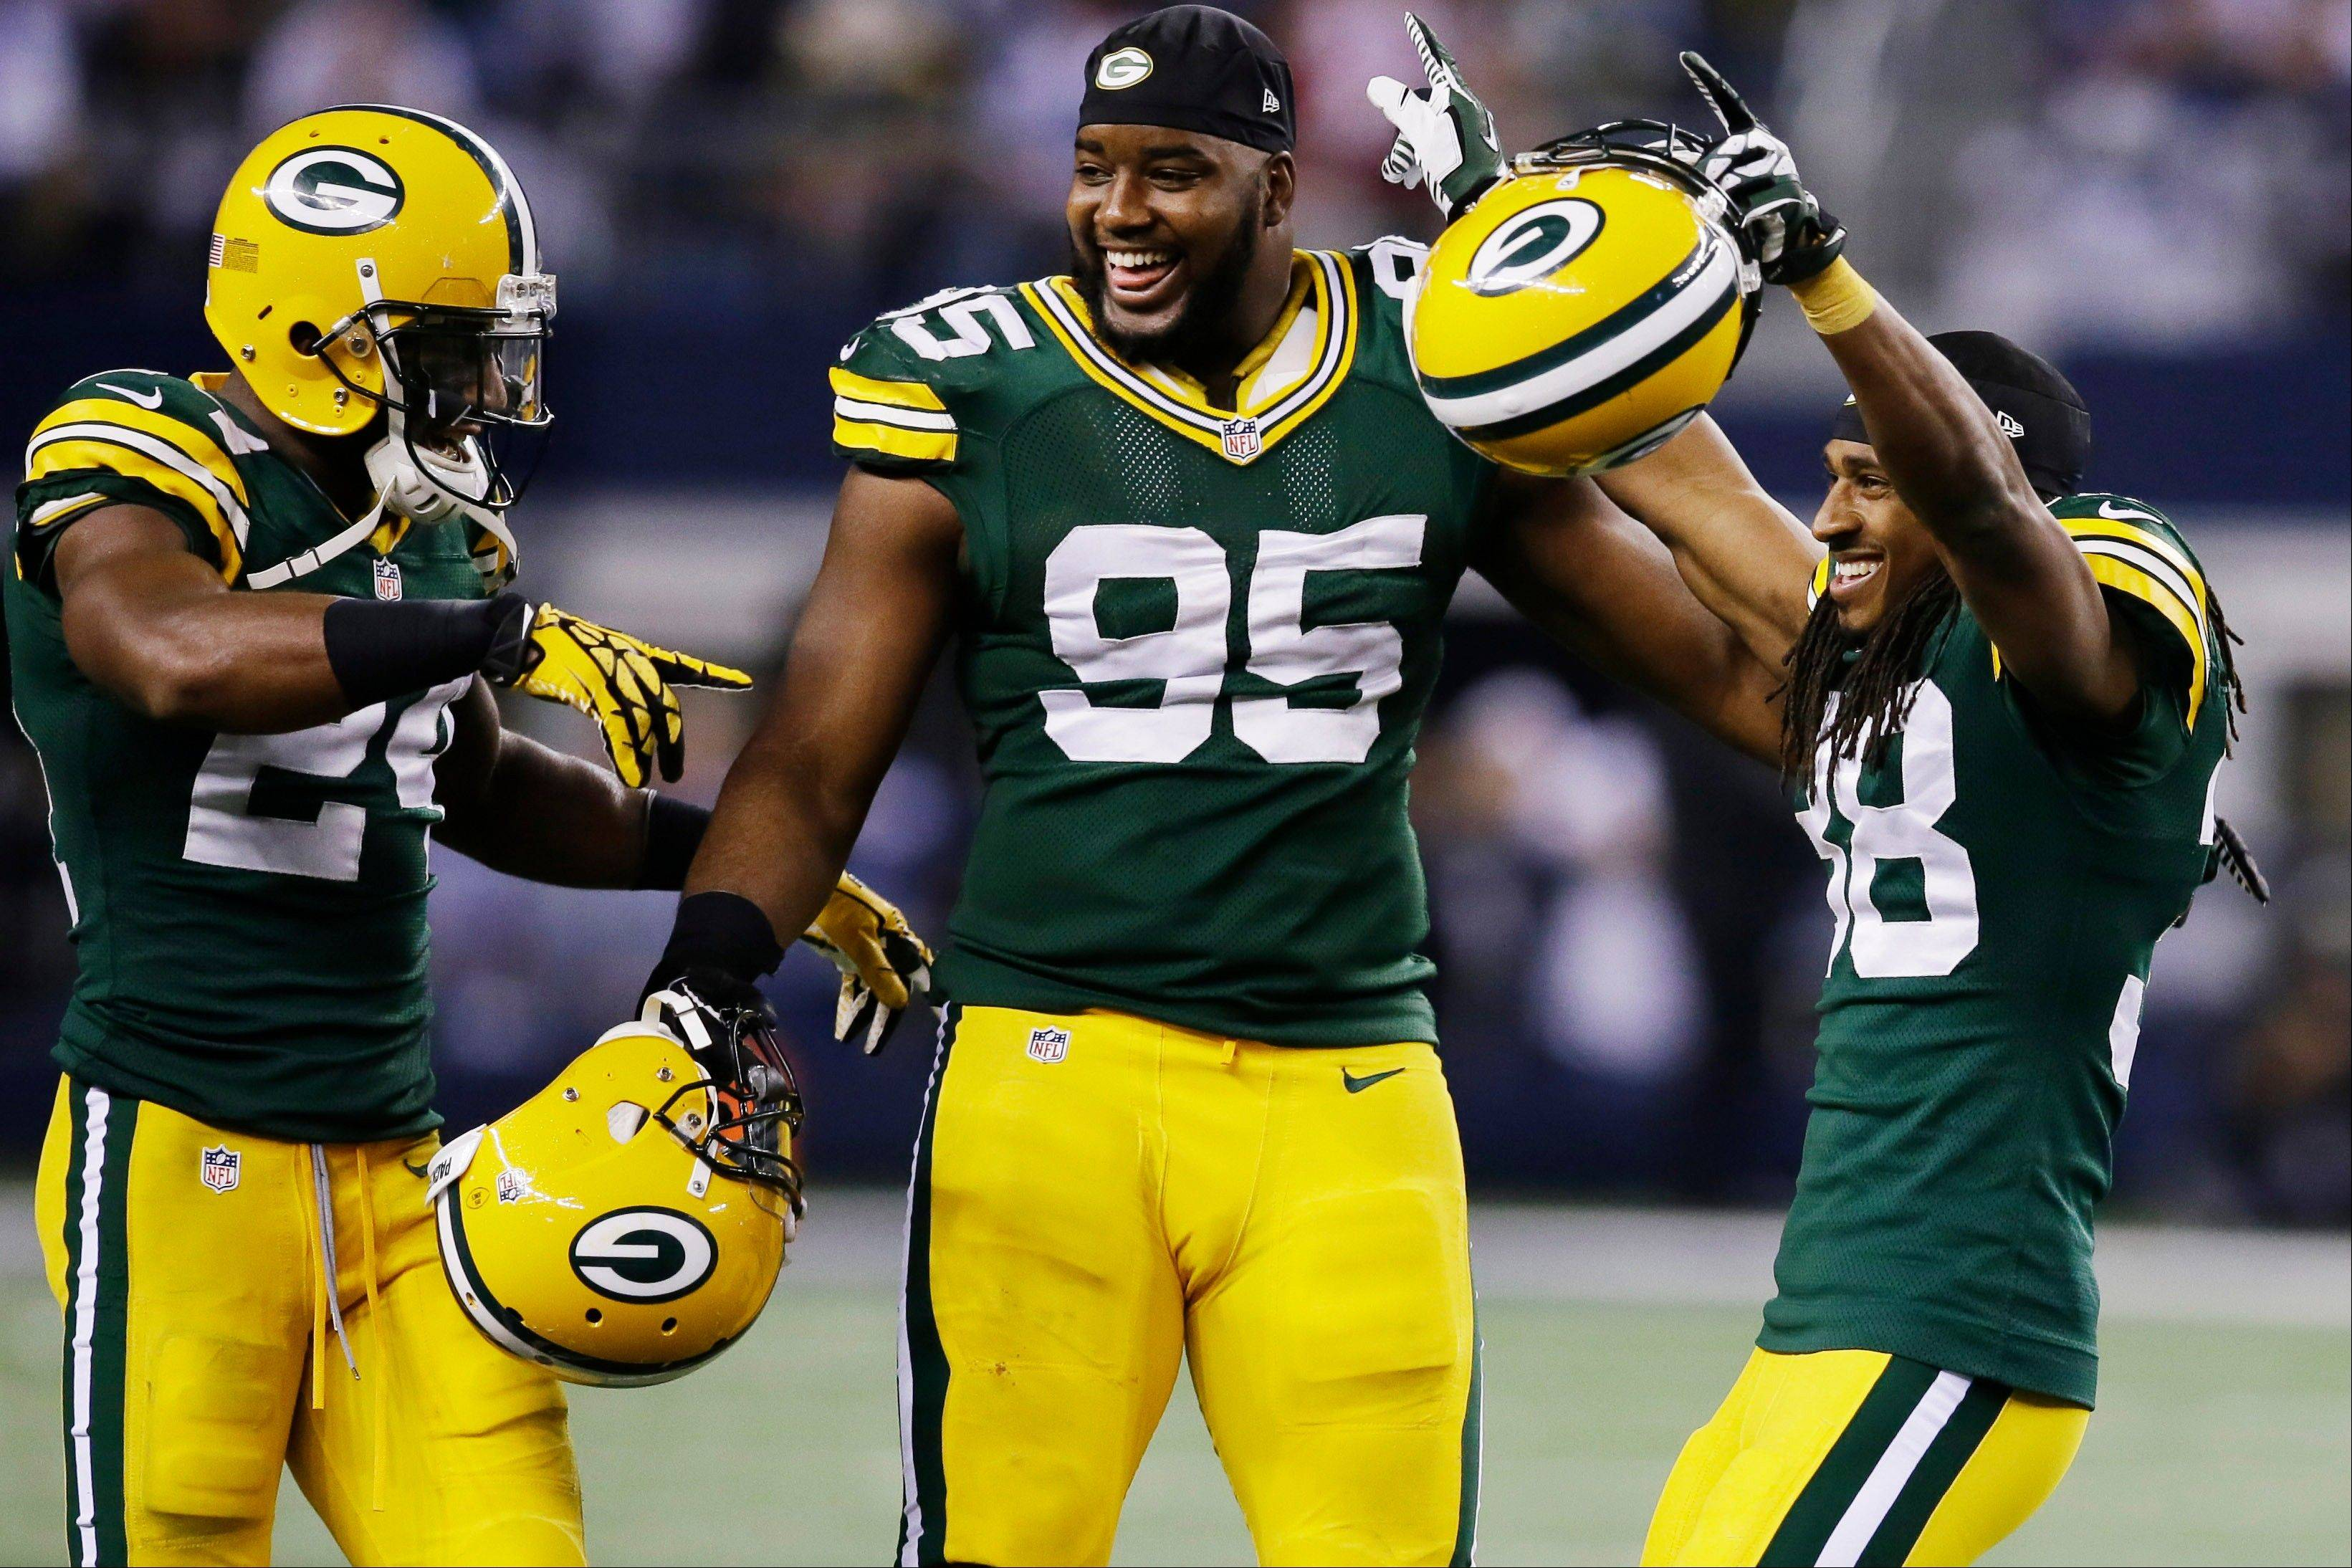 Green Bay Packers cornerback Jarrett Bush (24) defensive end Datone Jones (95) and cornerback Tramon Williams (38) celebrate after beating Dallas Cowboys 37-36 at an NFL football game, Sunday, Dec. 15, 2013, in Arlington, Texas.